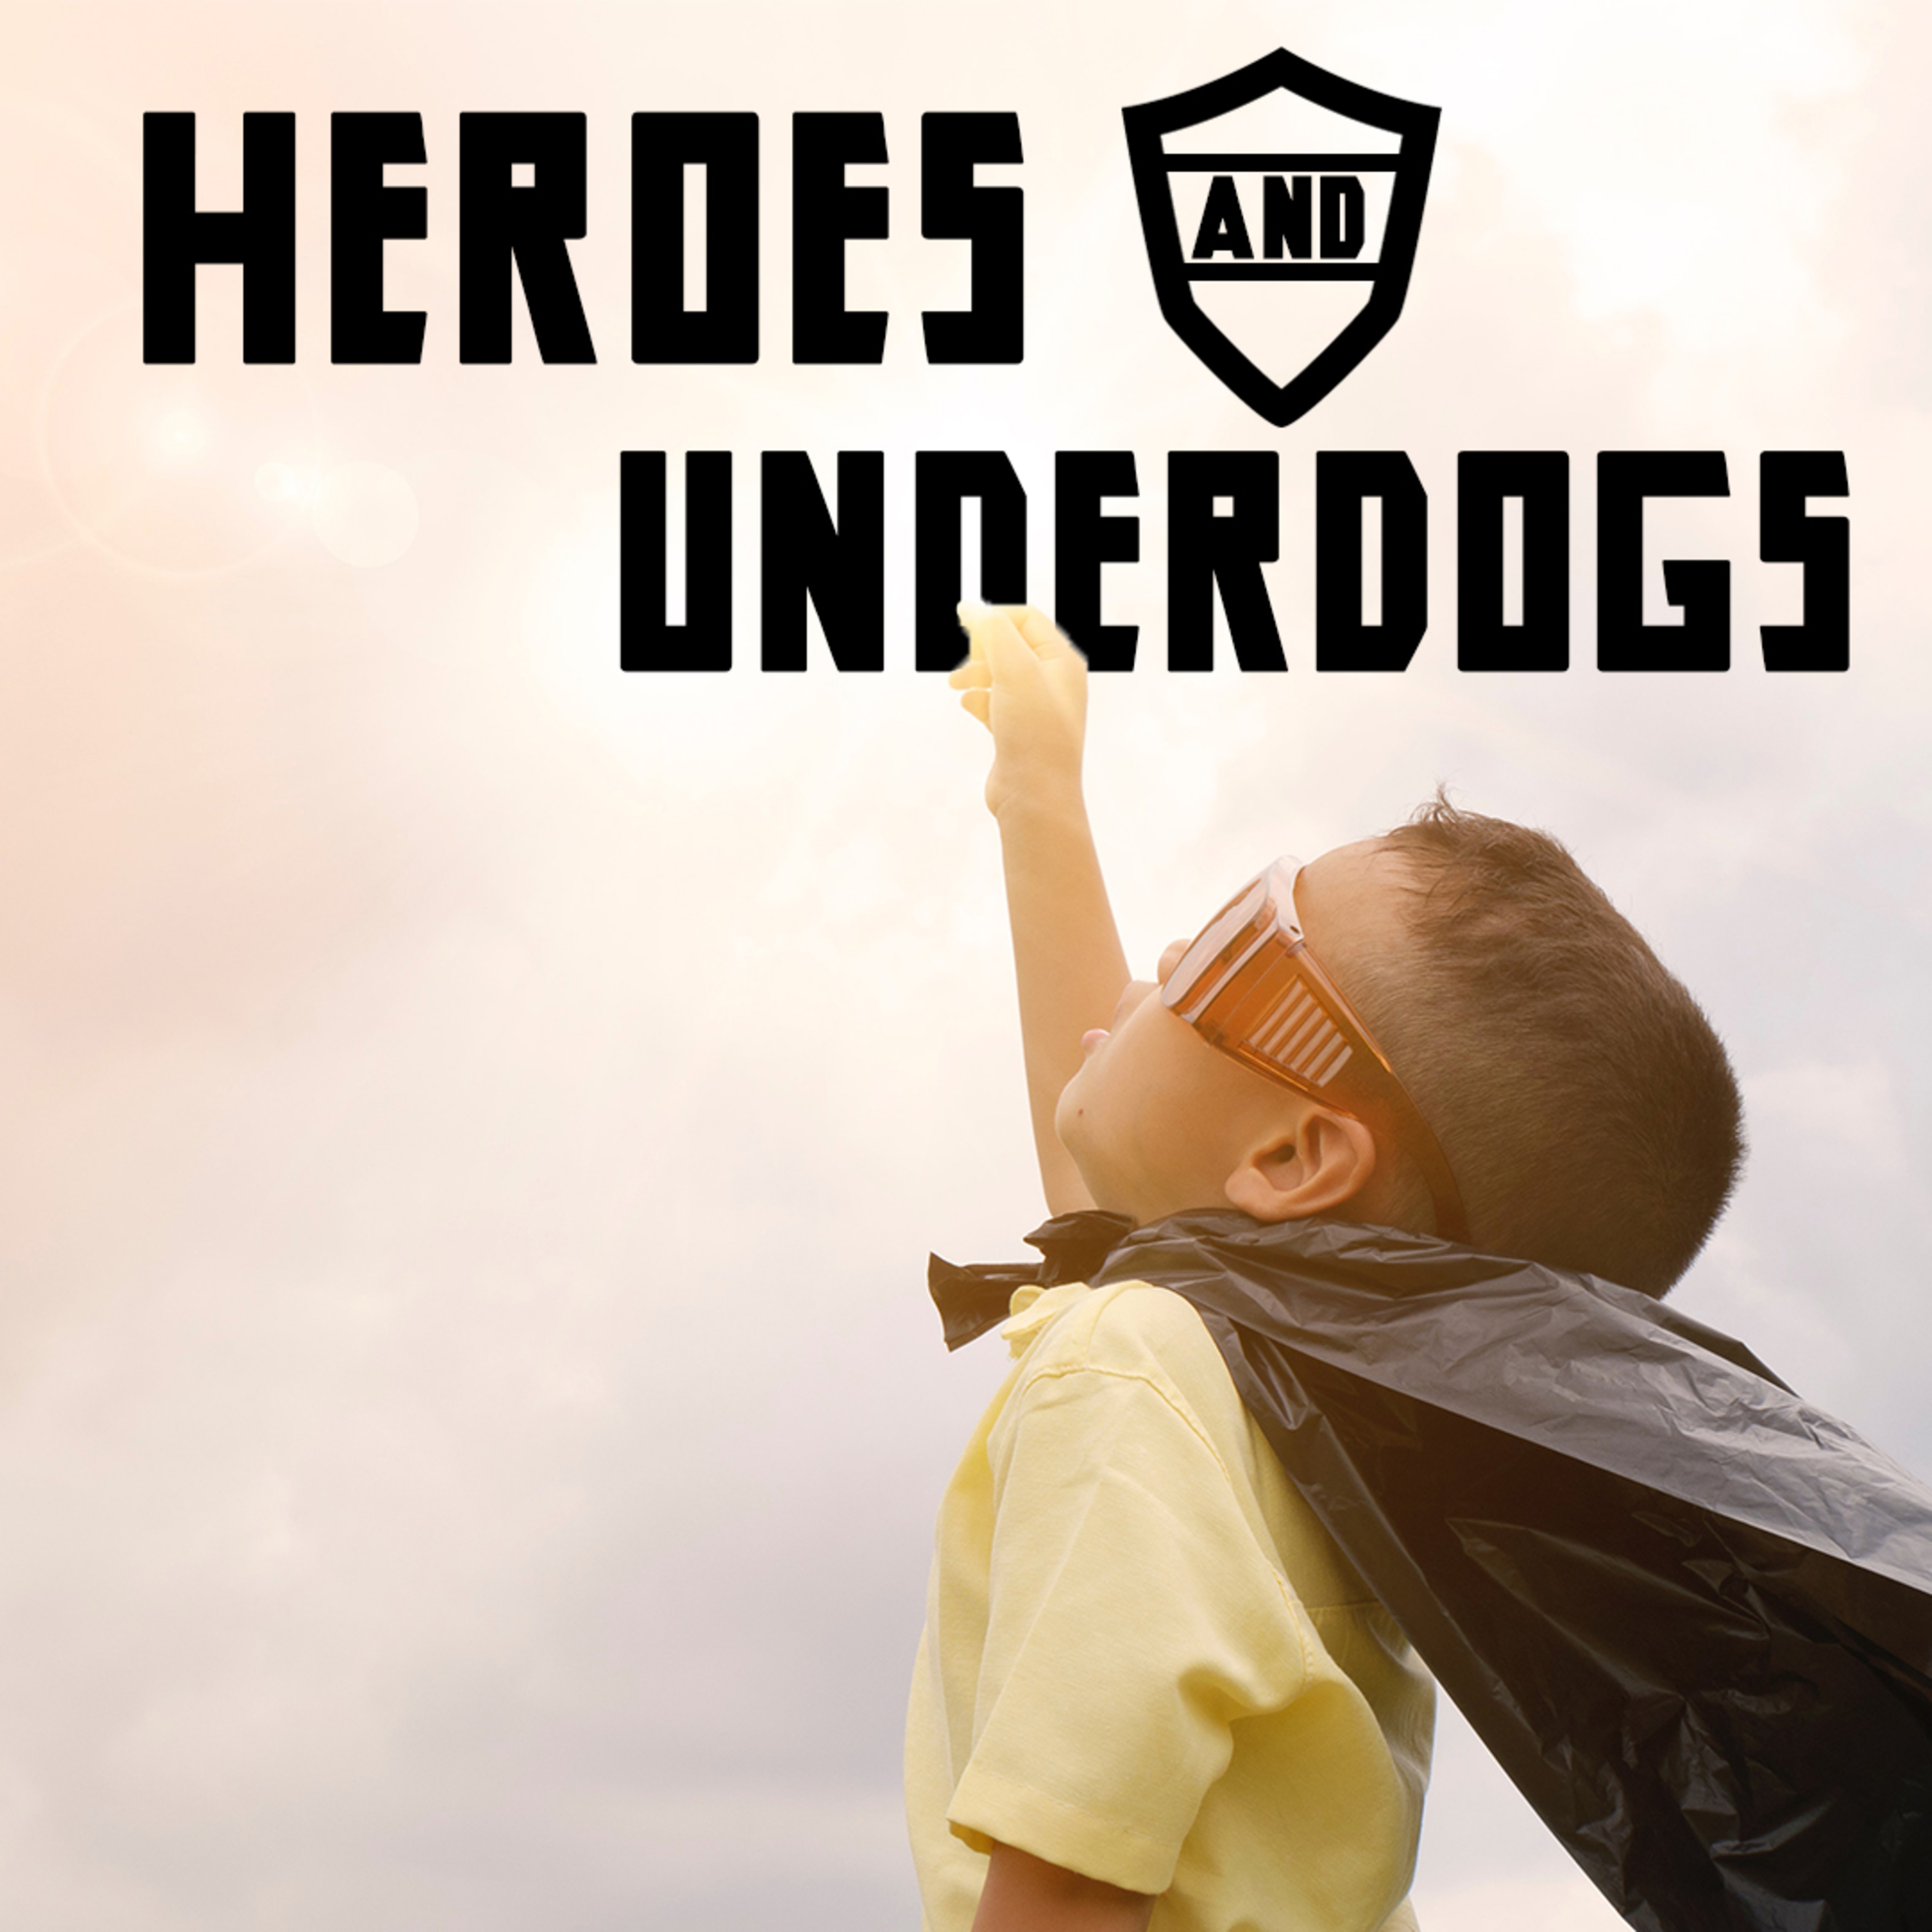 Heroes and Underdogs #27